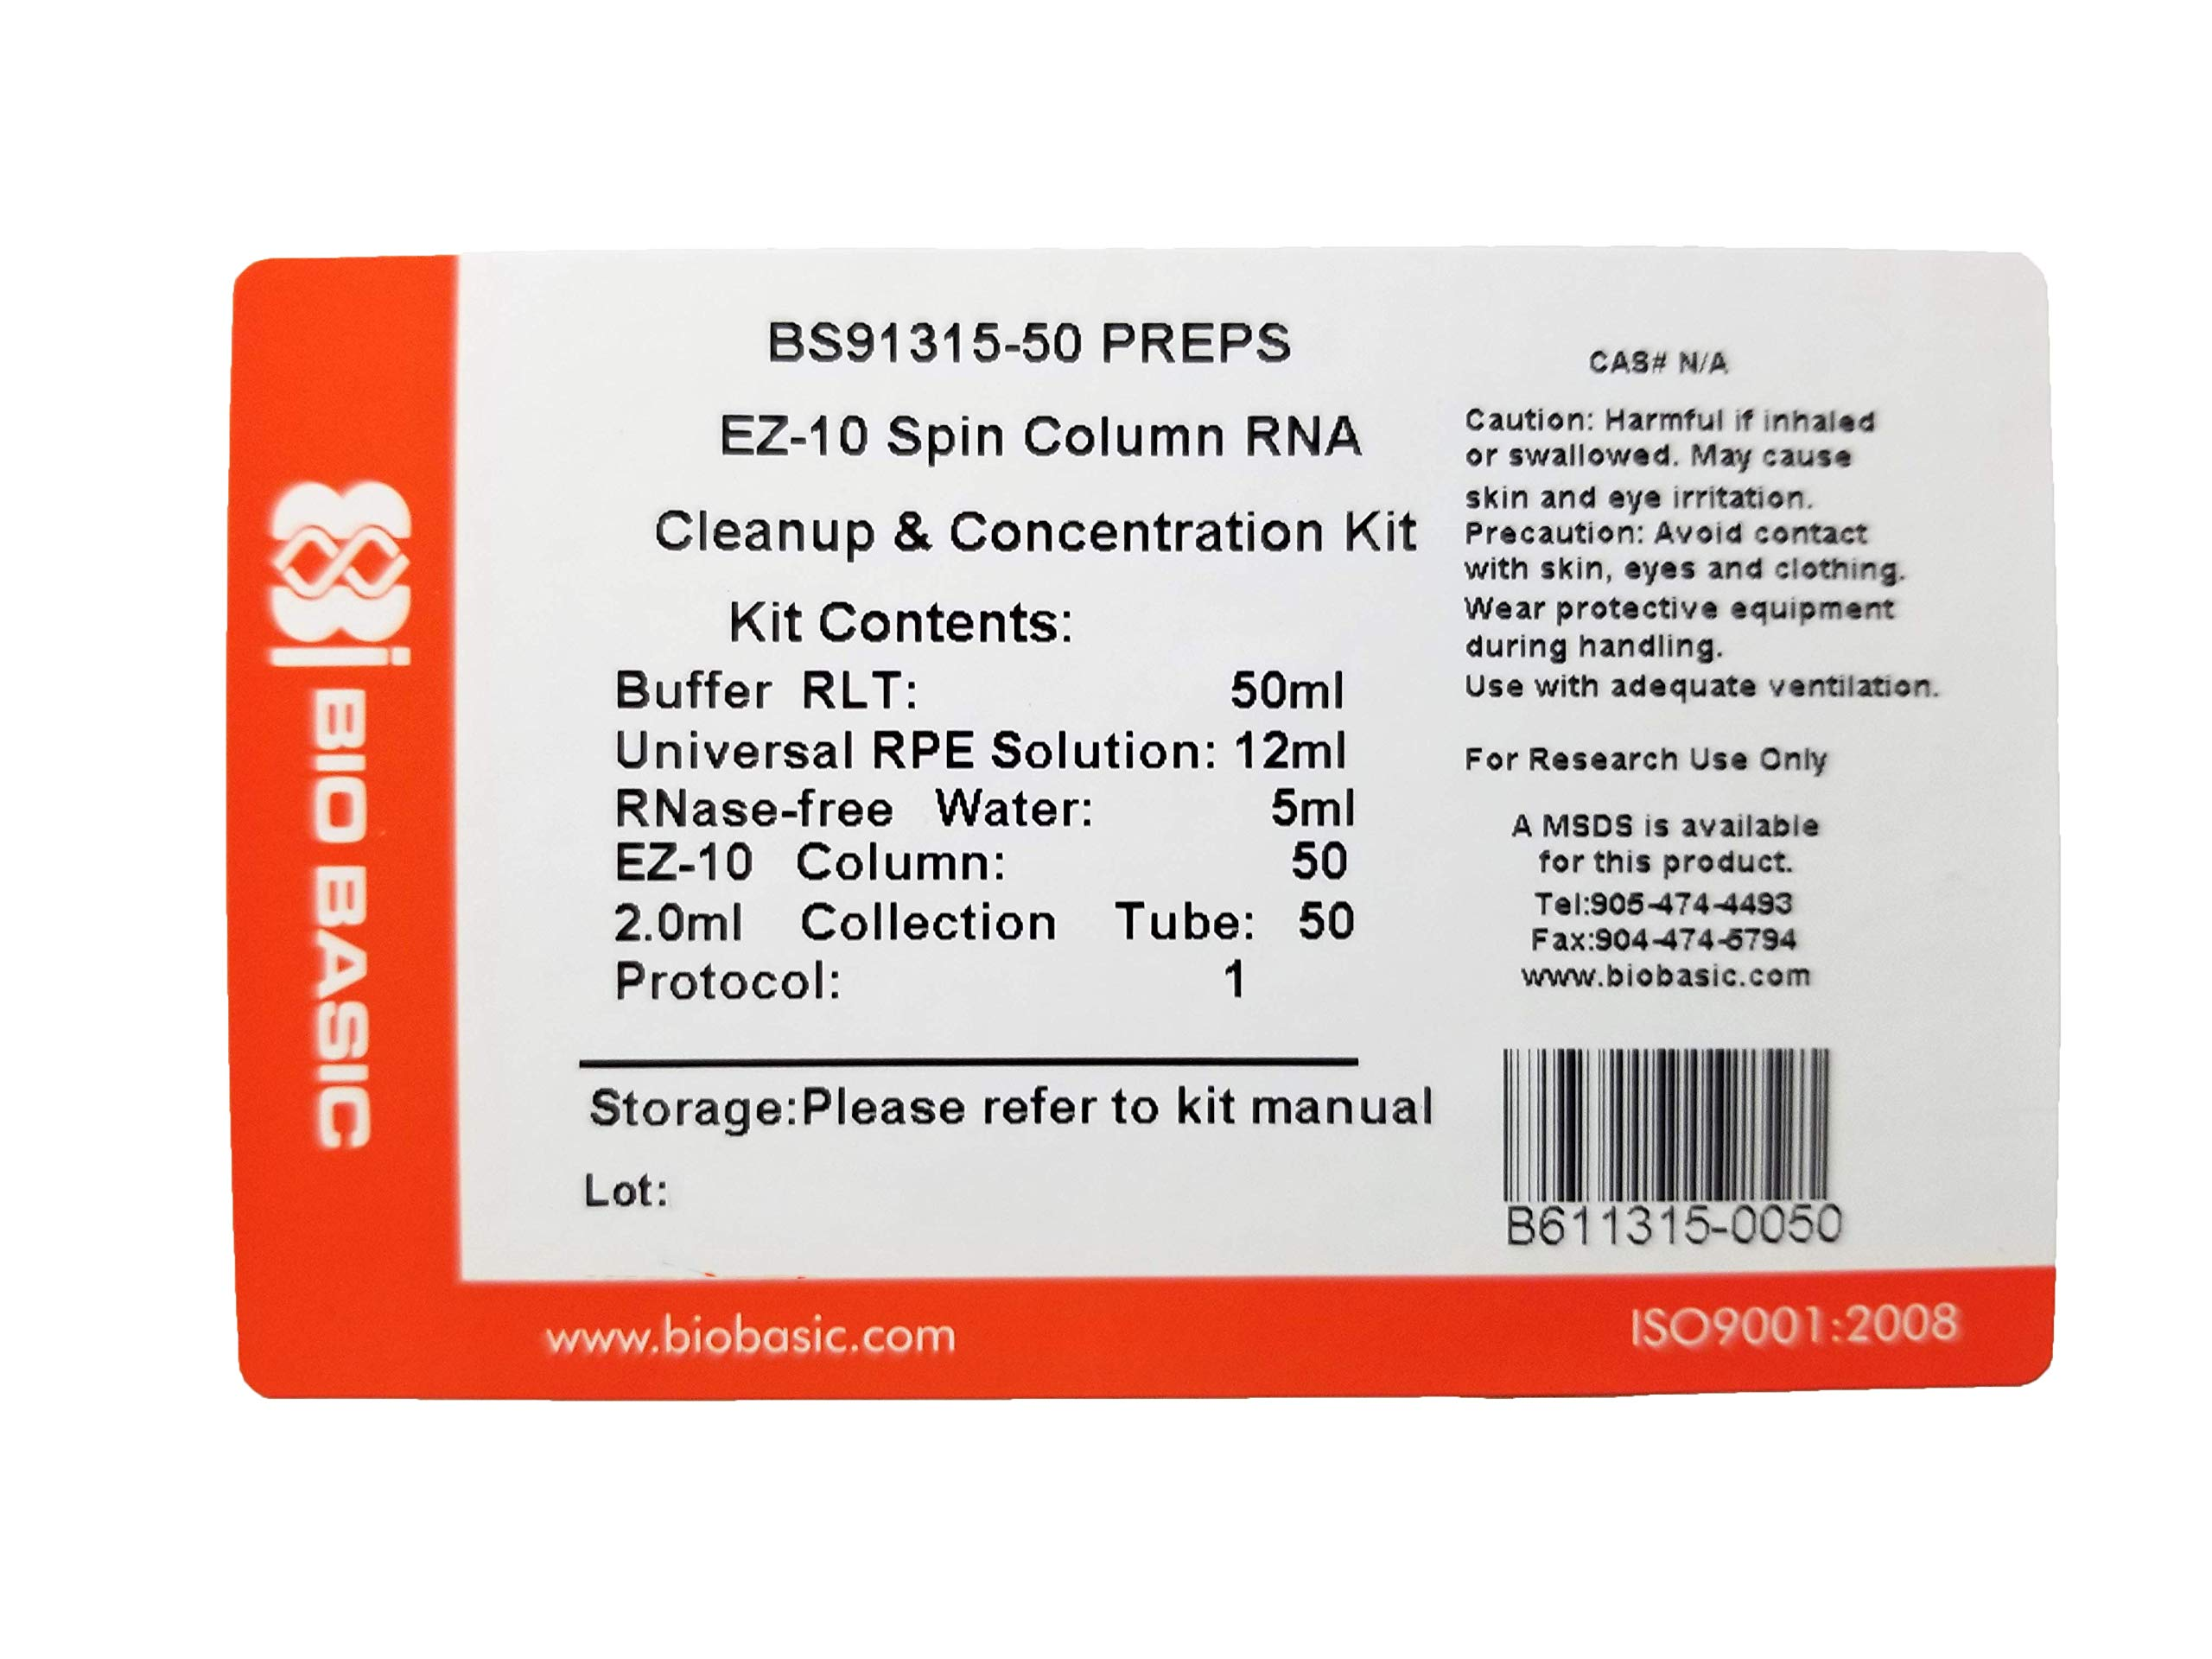 EZ-10 Spin Column RNA Cleanup and Concentration Kit, 50 Preparations